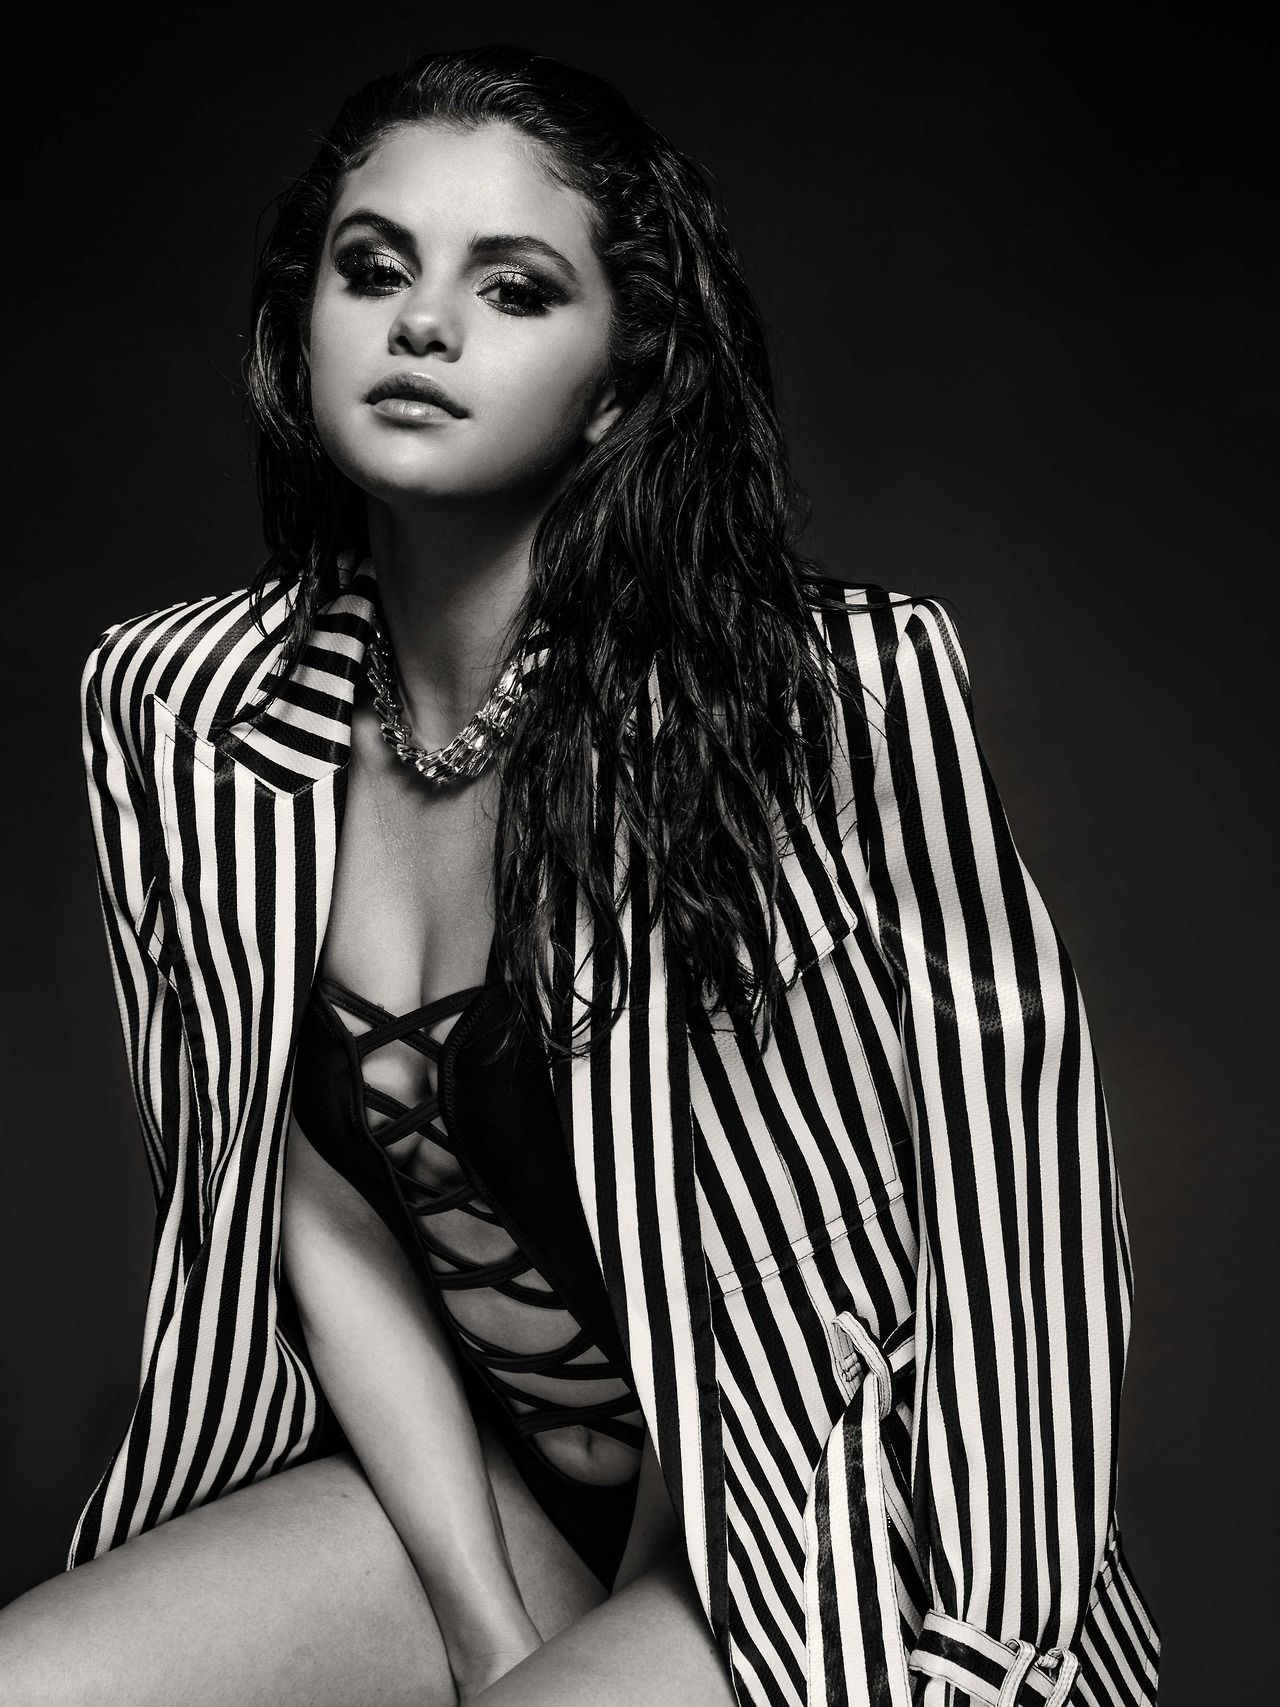 selena gomez photos wallpapers